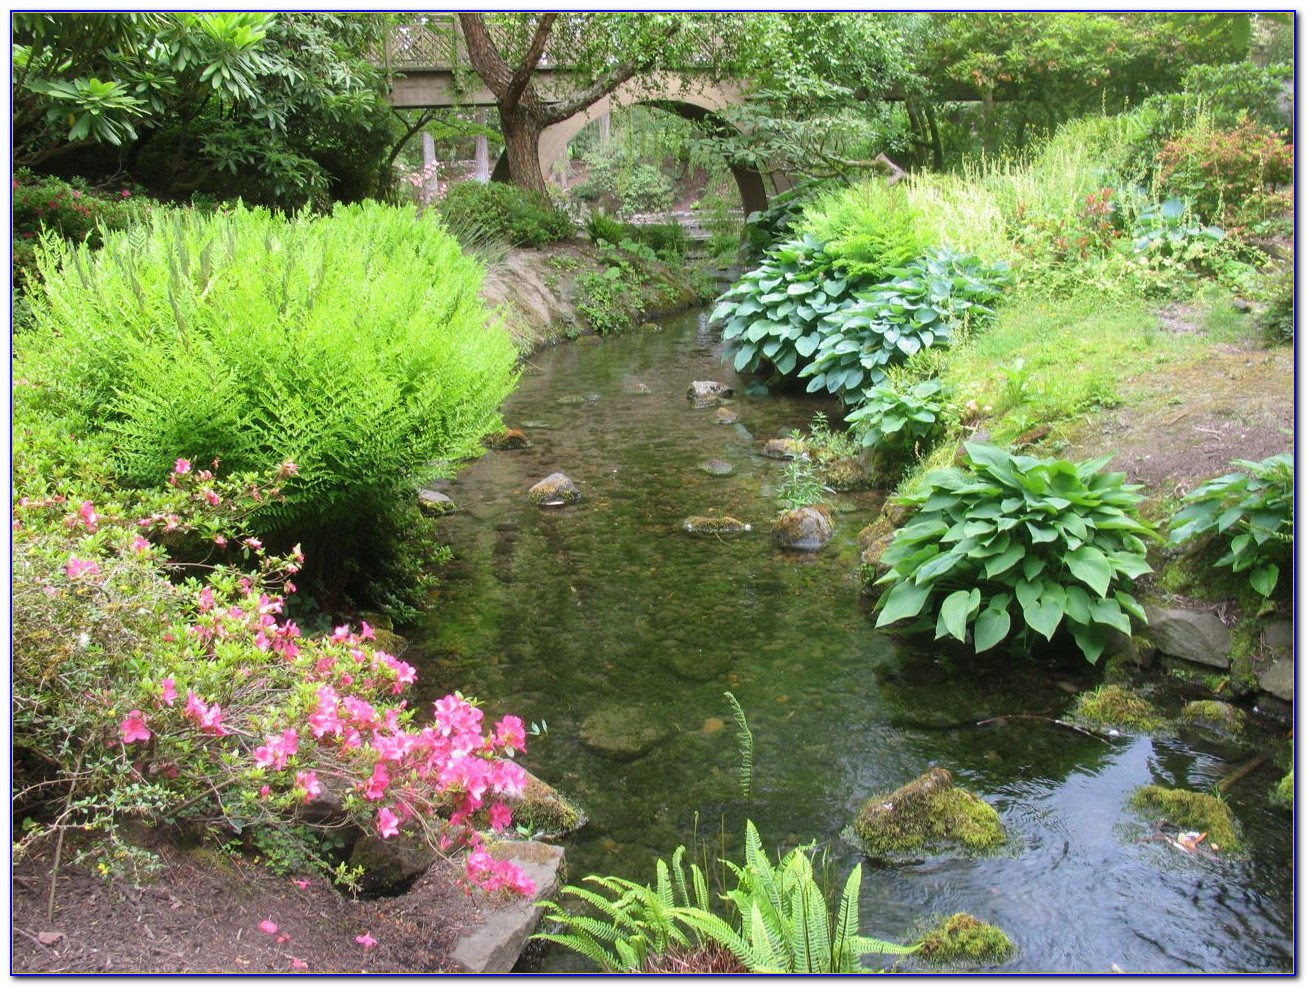 Crystal Springs Rhododendron Garden Admission